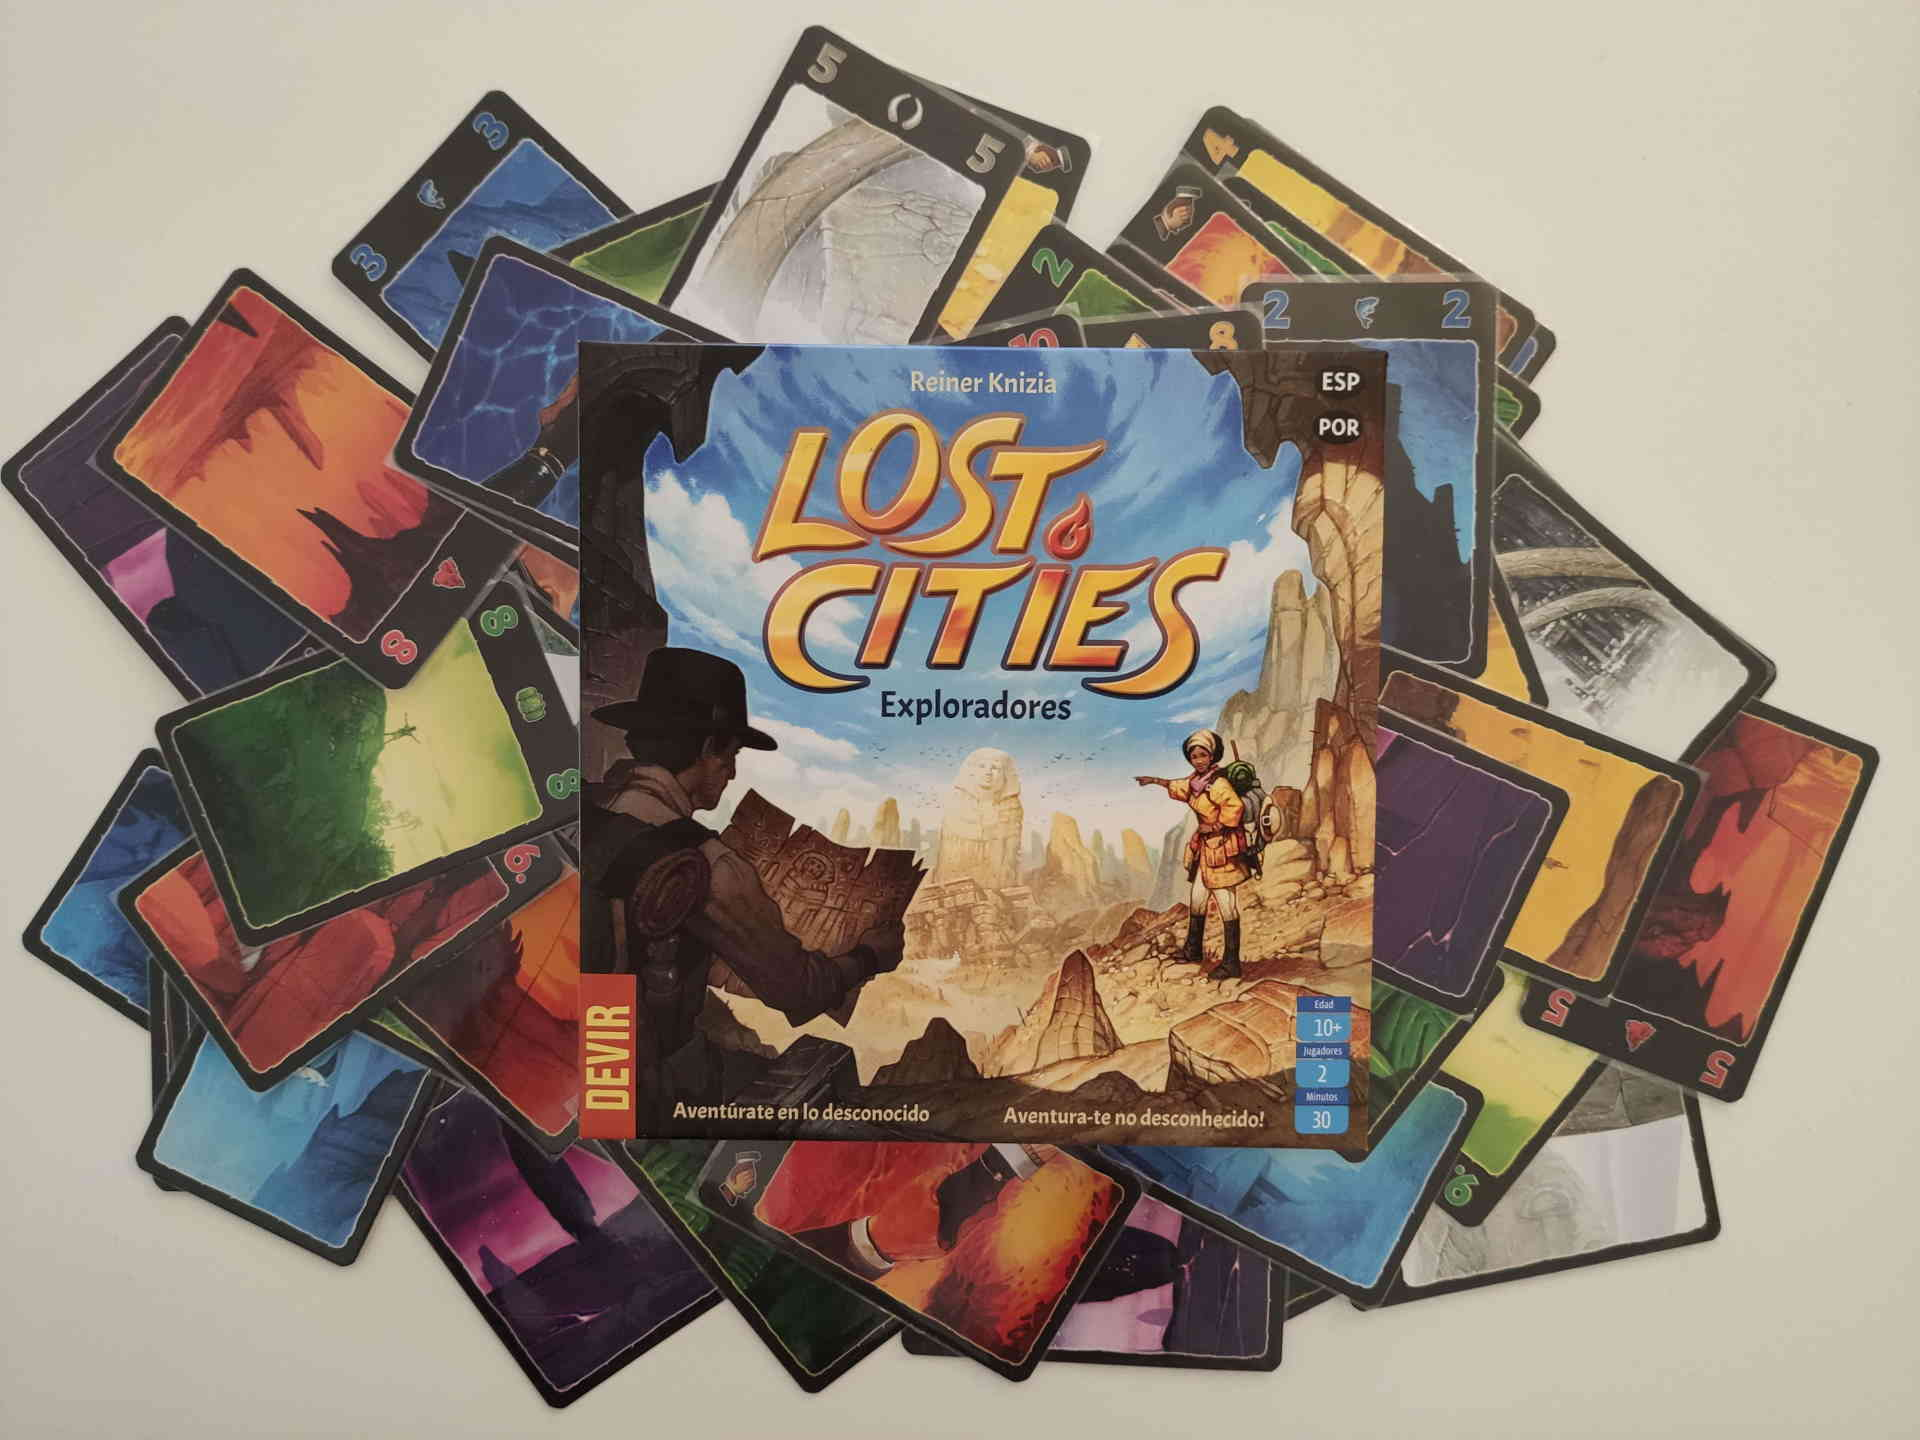 Lost Cities Portada